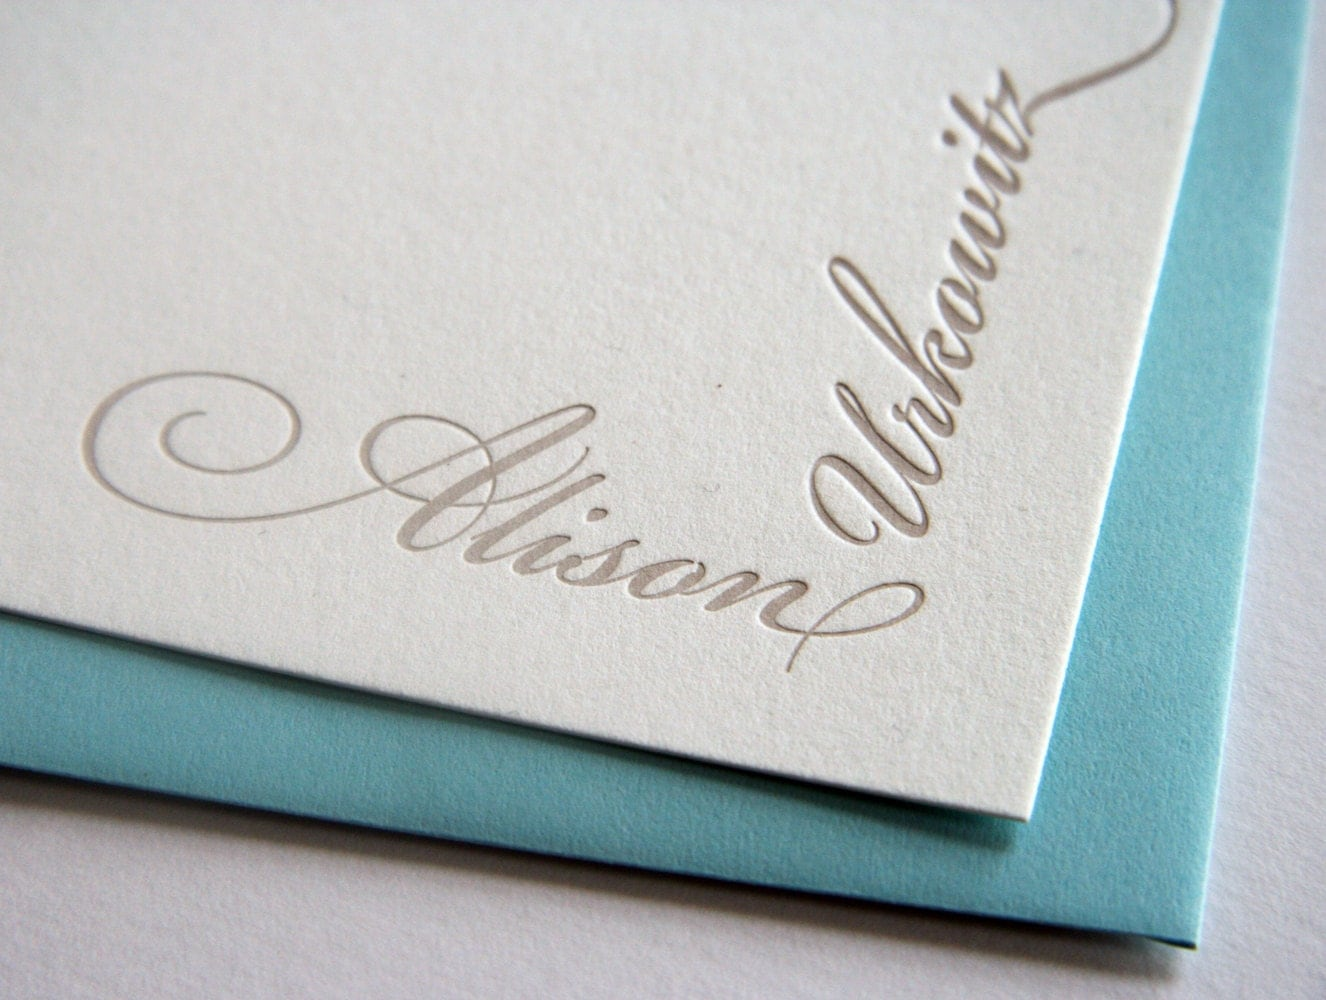 Personalized stationery reviews